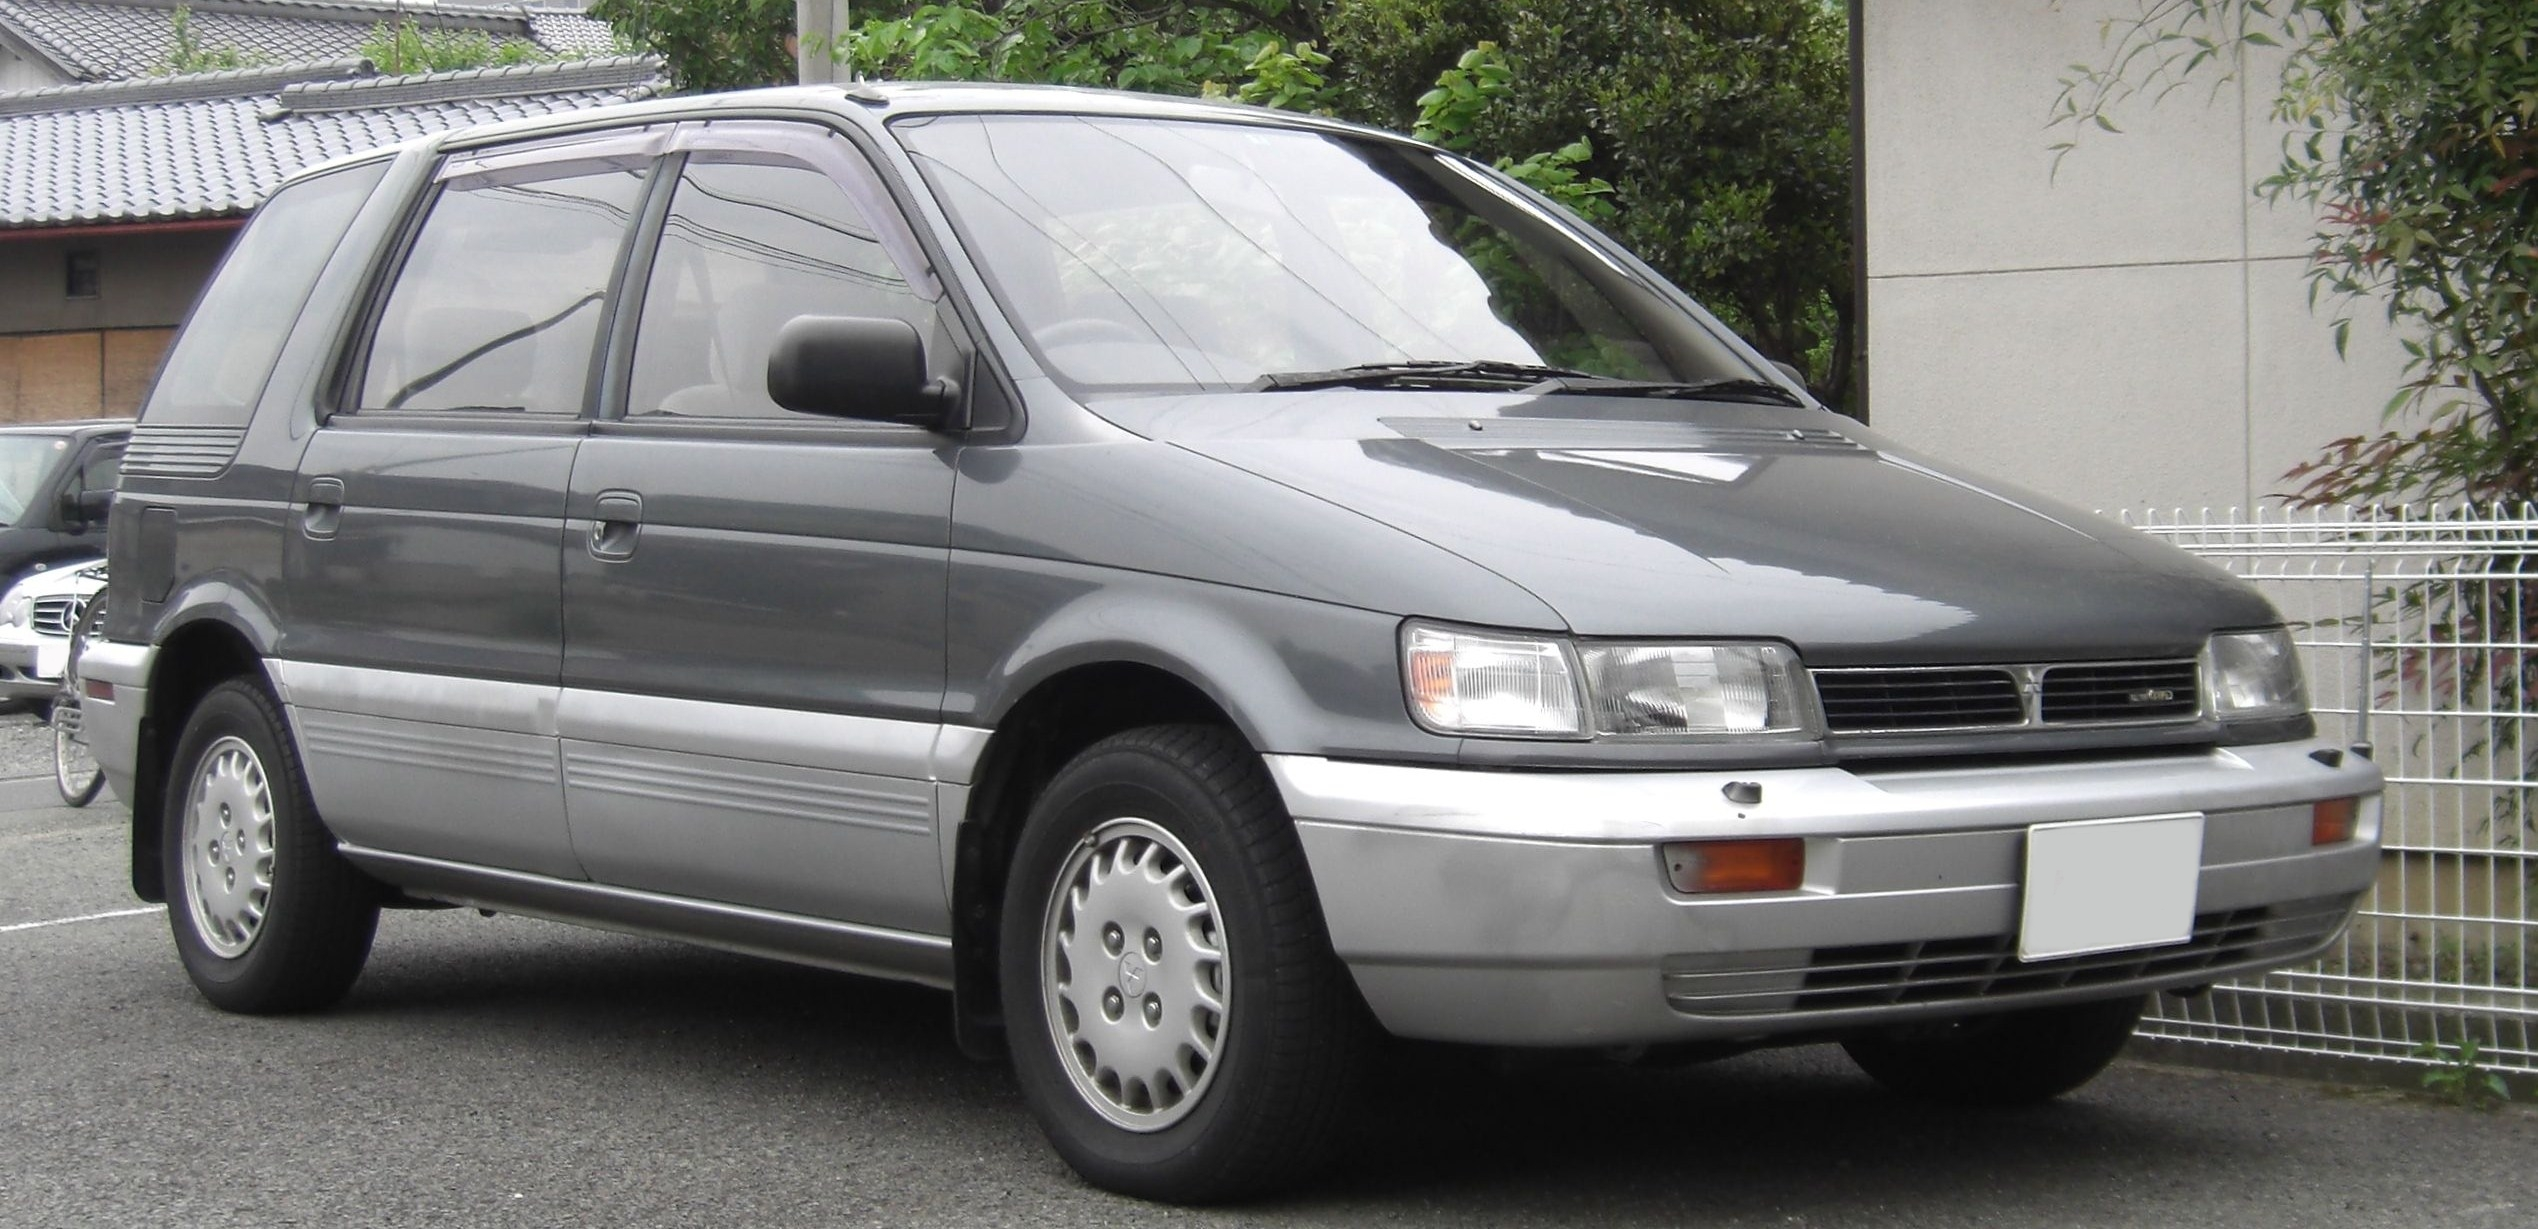 1992 Mitsubishi Space Runner #15